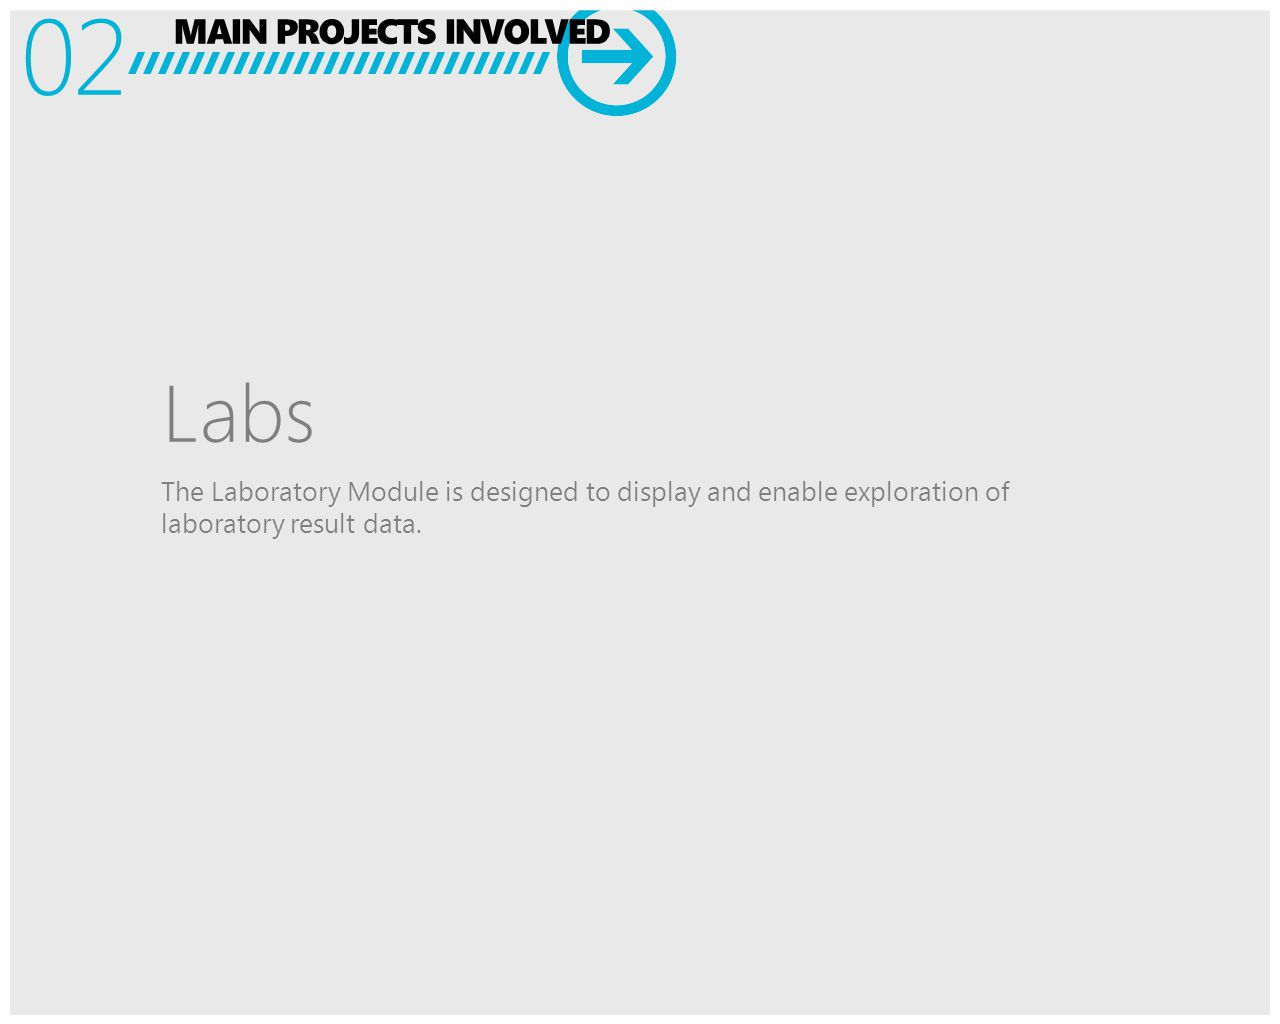 MAIN PROJECTS INVOLVED 02 Labs The Laboratory Module is designed to display and enable exploration of laboratory result data.